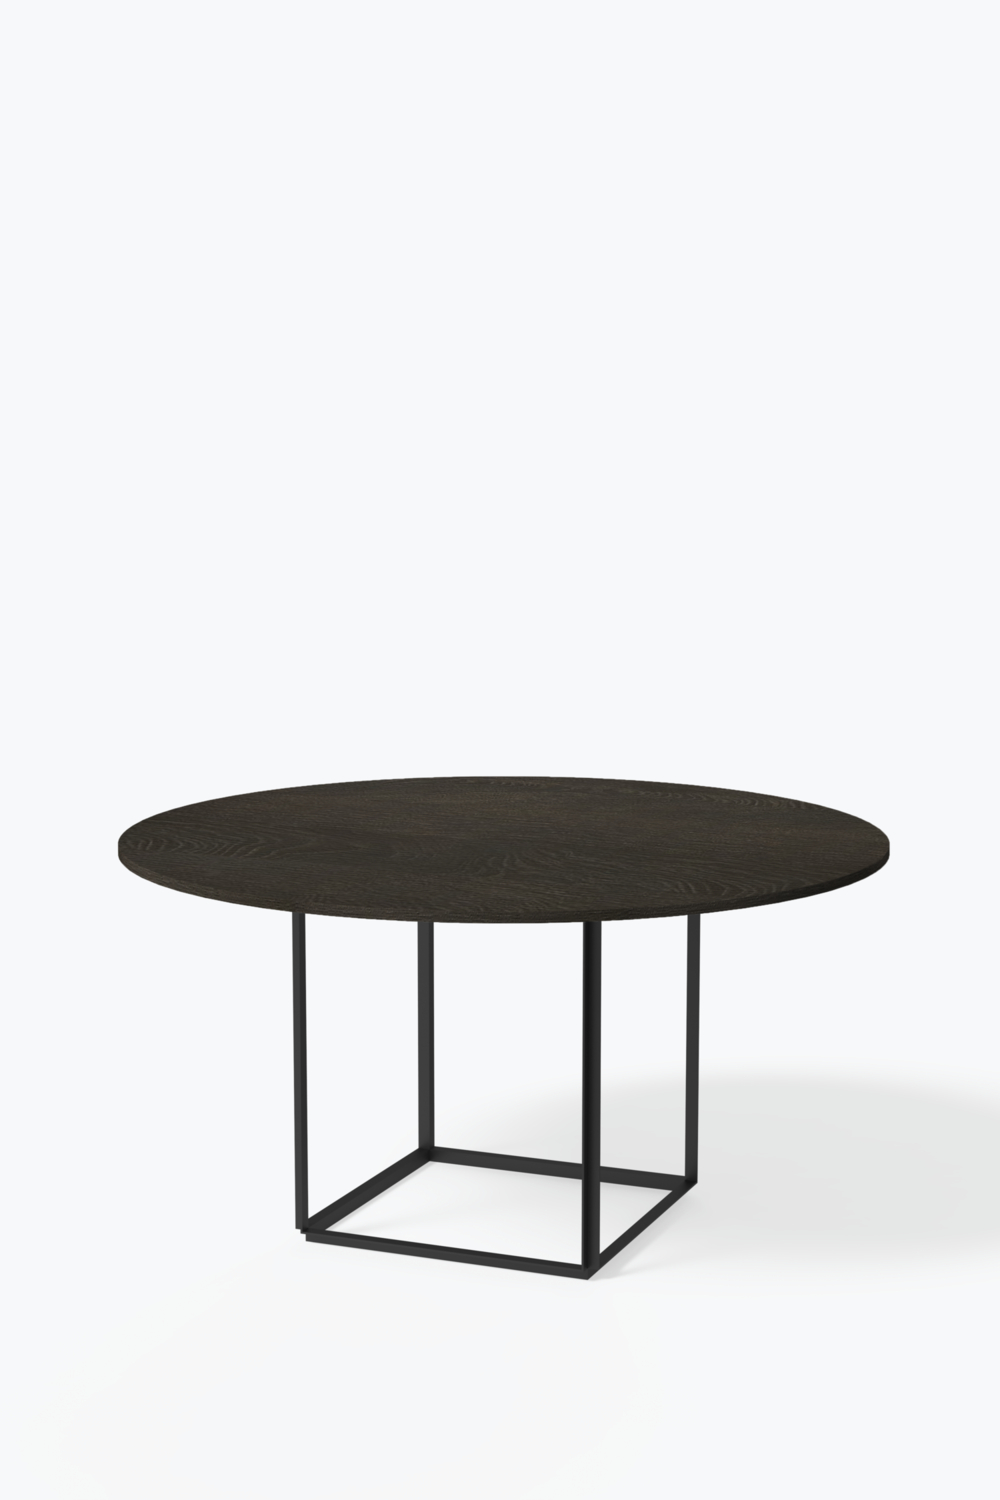 Latest Smoked Oval Glasstop Dining Tables For Florence Dining Table – Ø 145 Cm W (View 4 of 30)